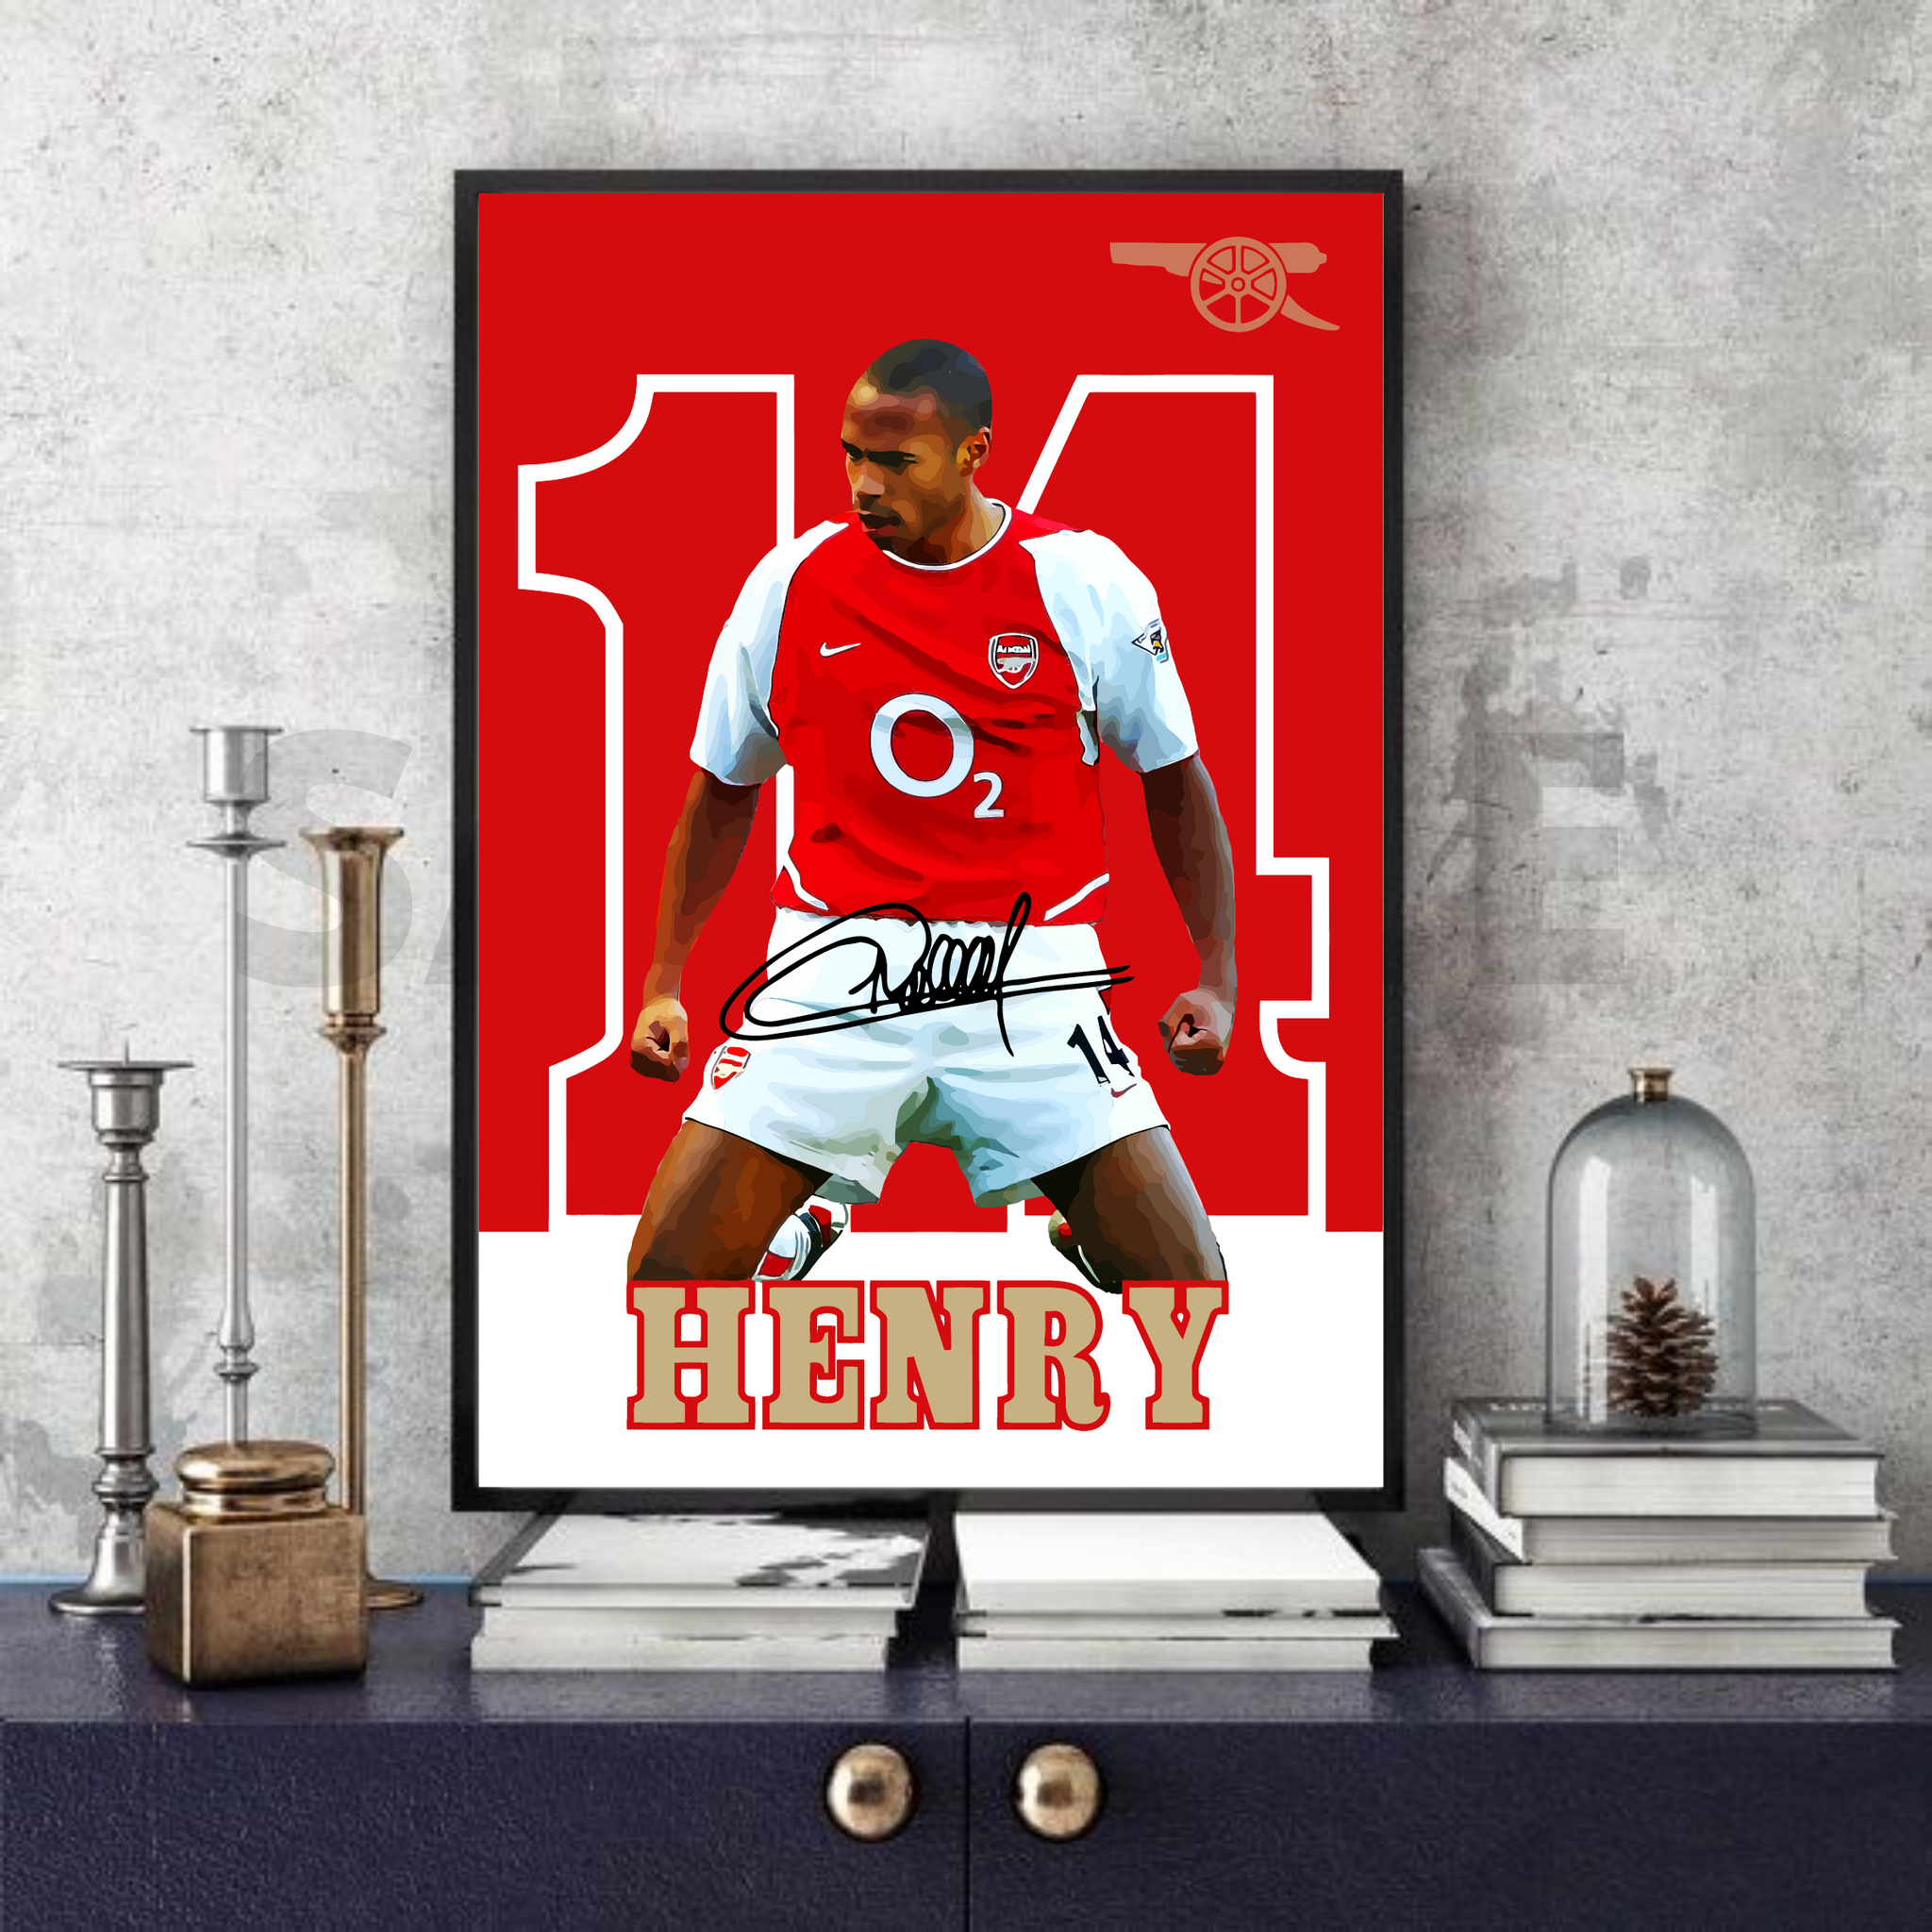 Thierry Henry (Arsenal) #71 - Signed print